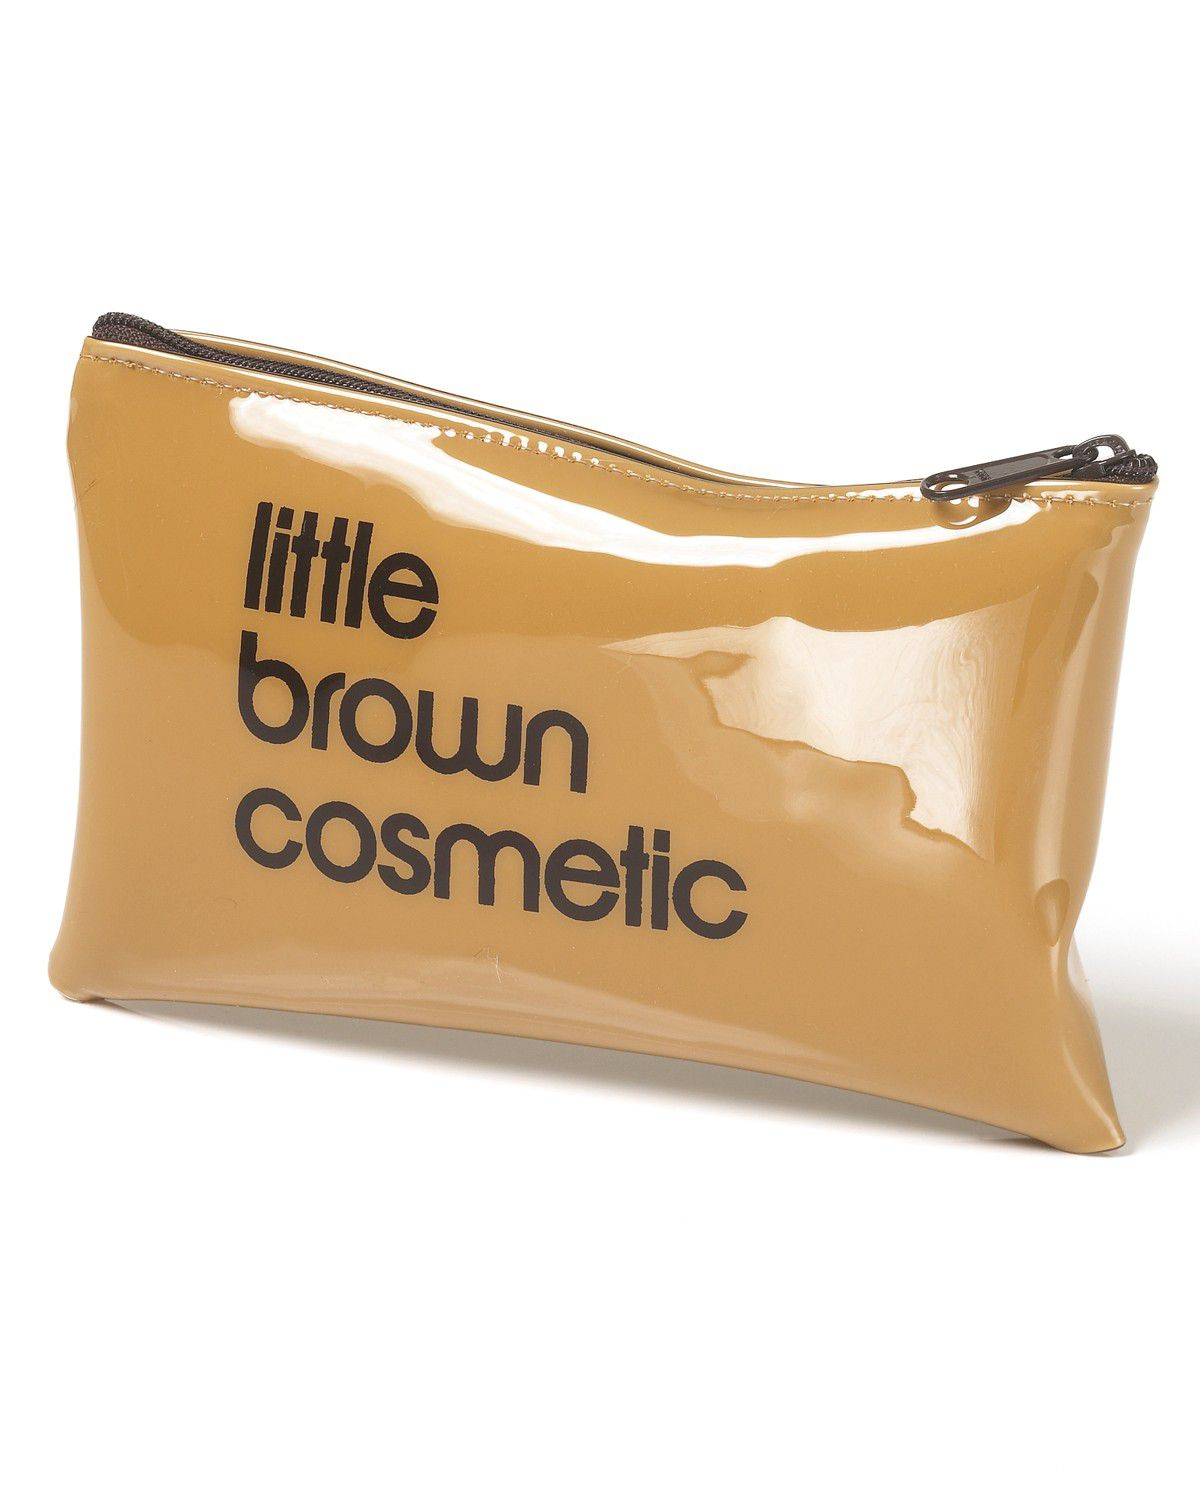 Little Brown Cosmetics Case   100 Percents Exclusive by Bloomingdale's